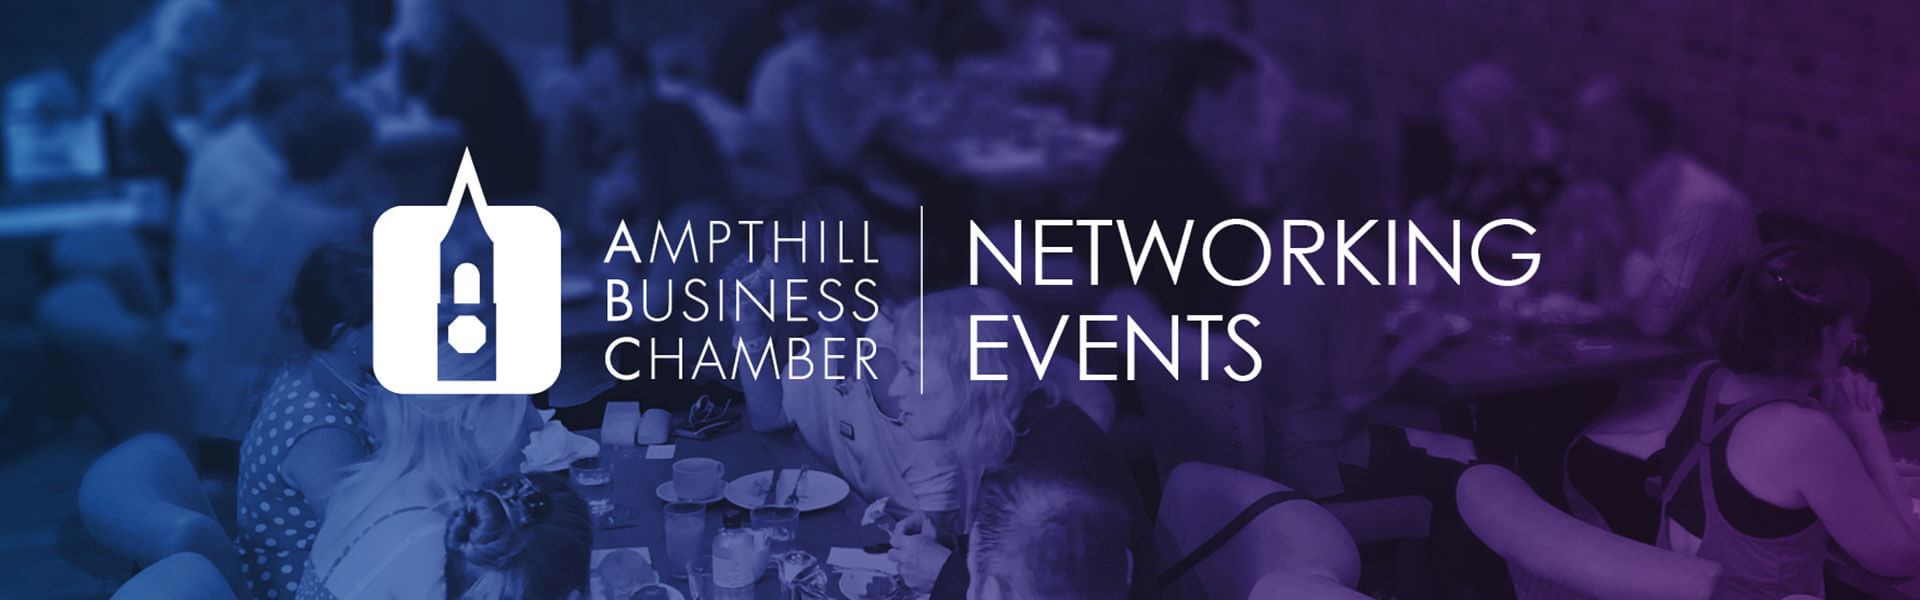 Ampthill Business Chamber Networking Event